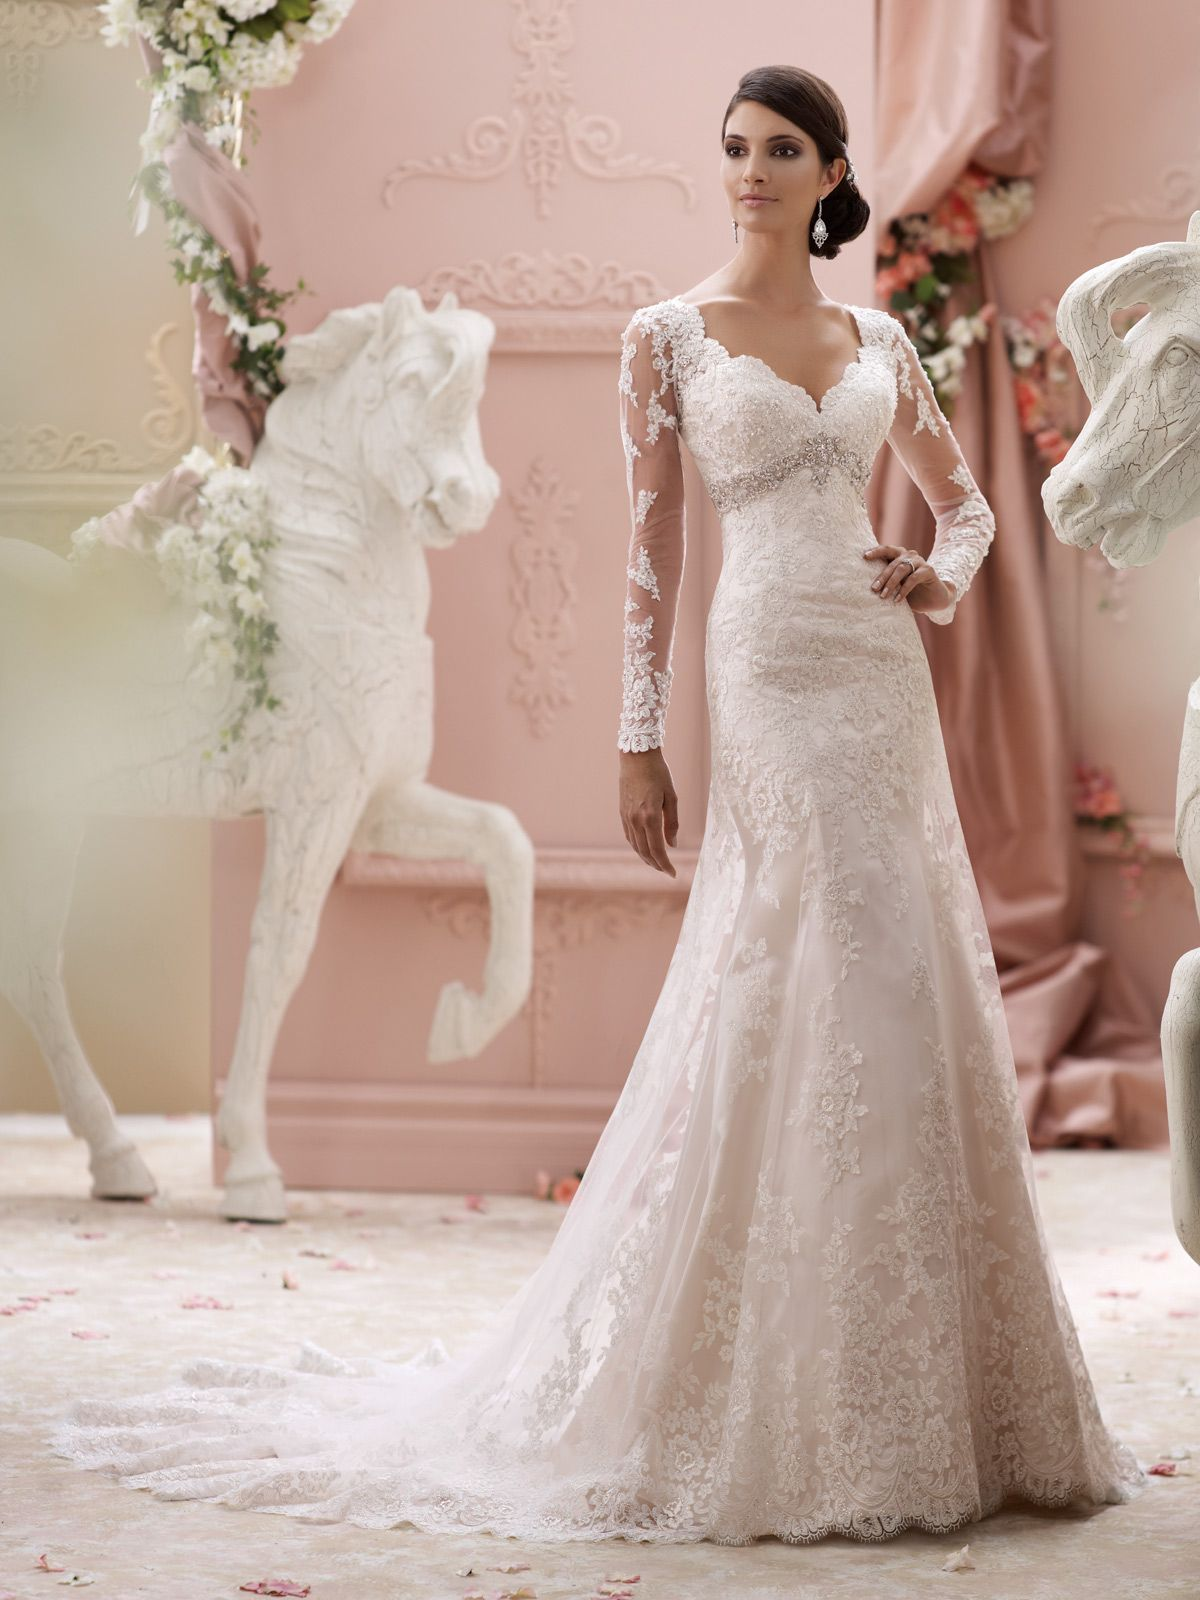 Unique Wedding Dresses Fall 2018 - Martin Thornburg | Pinterest ...